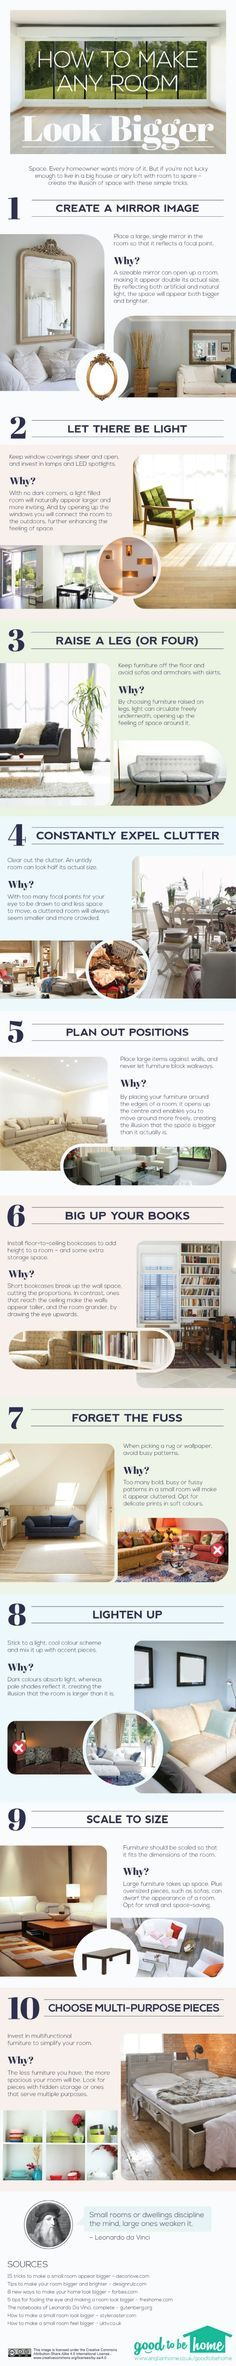 44. How to Make Any Room Look Bigger - 50 Amazingly Clever Cheat Sheets To Simplify Home Decorating Projects